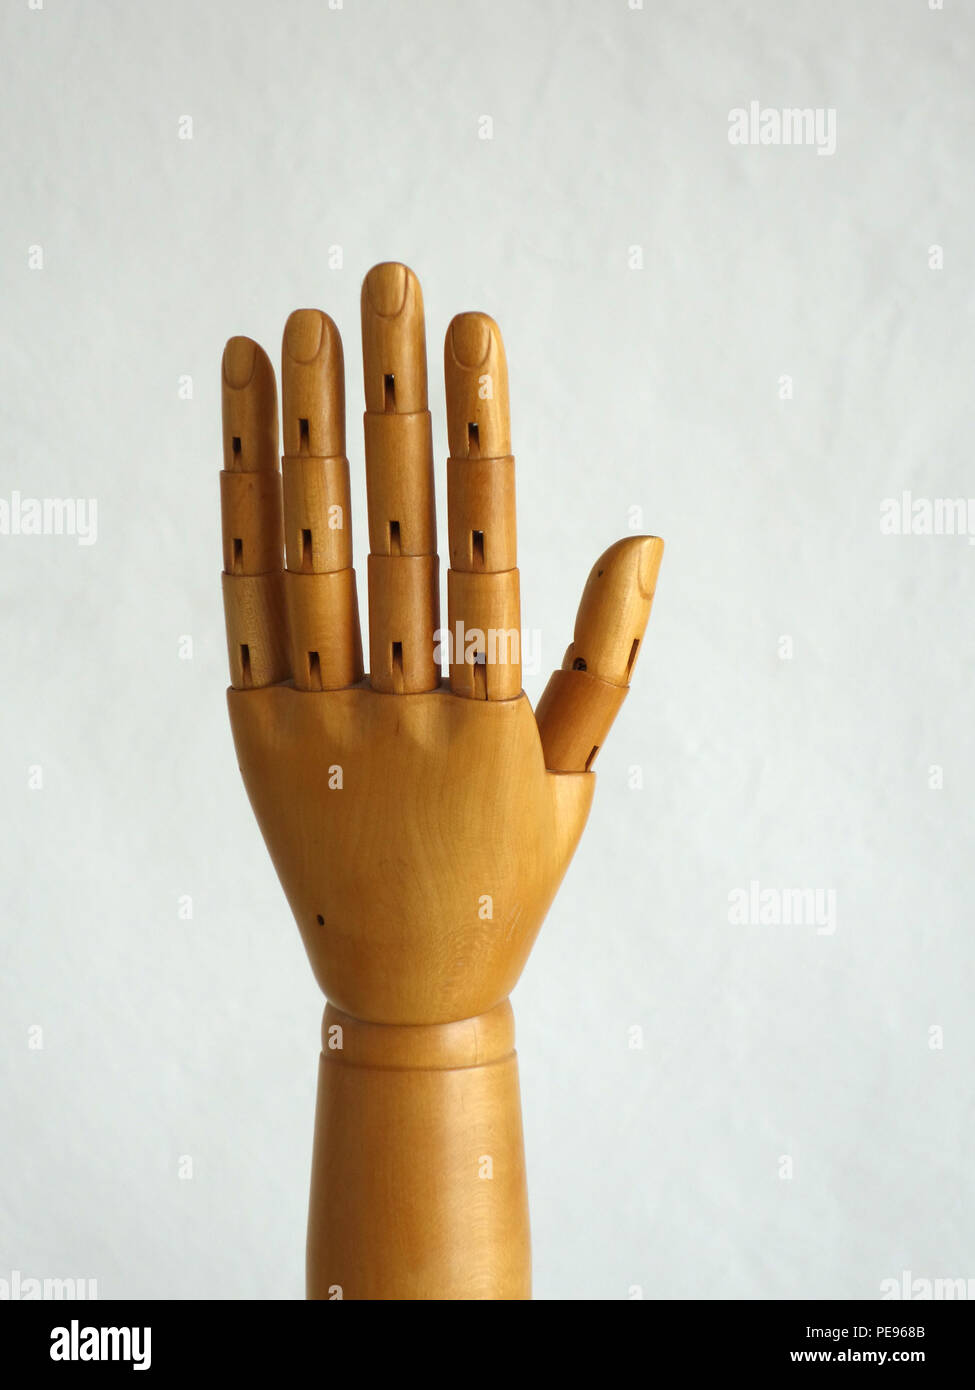 Wooden Hand Manikin making five finger gestures - Stock Image